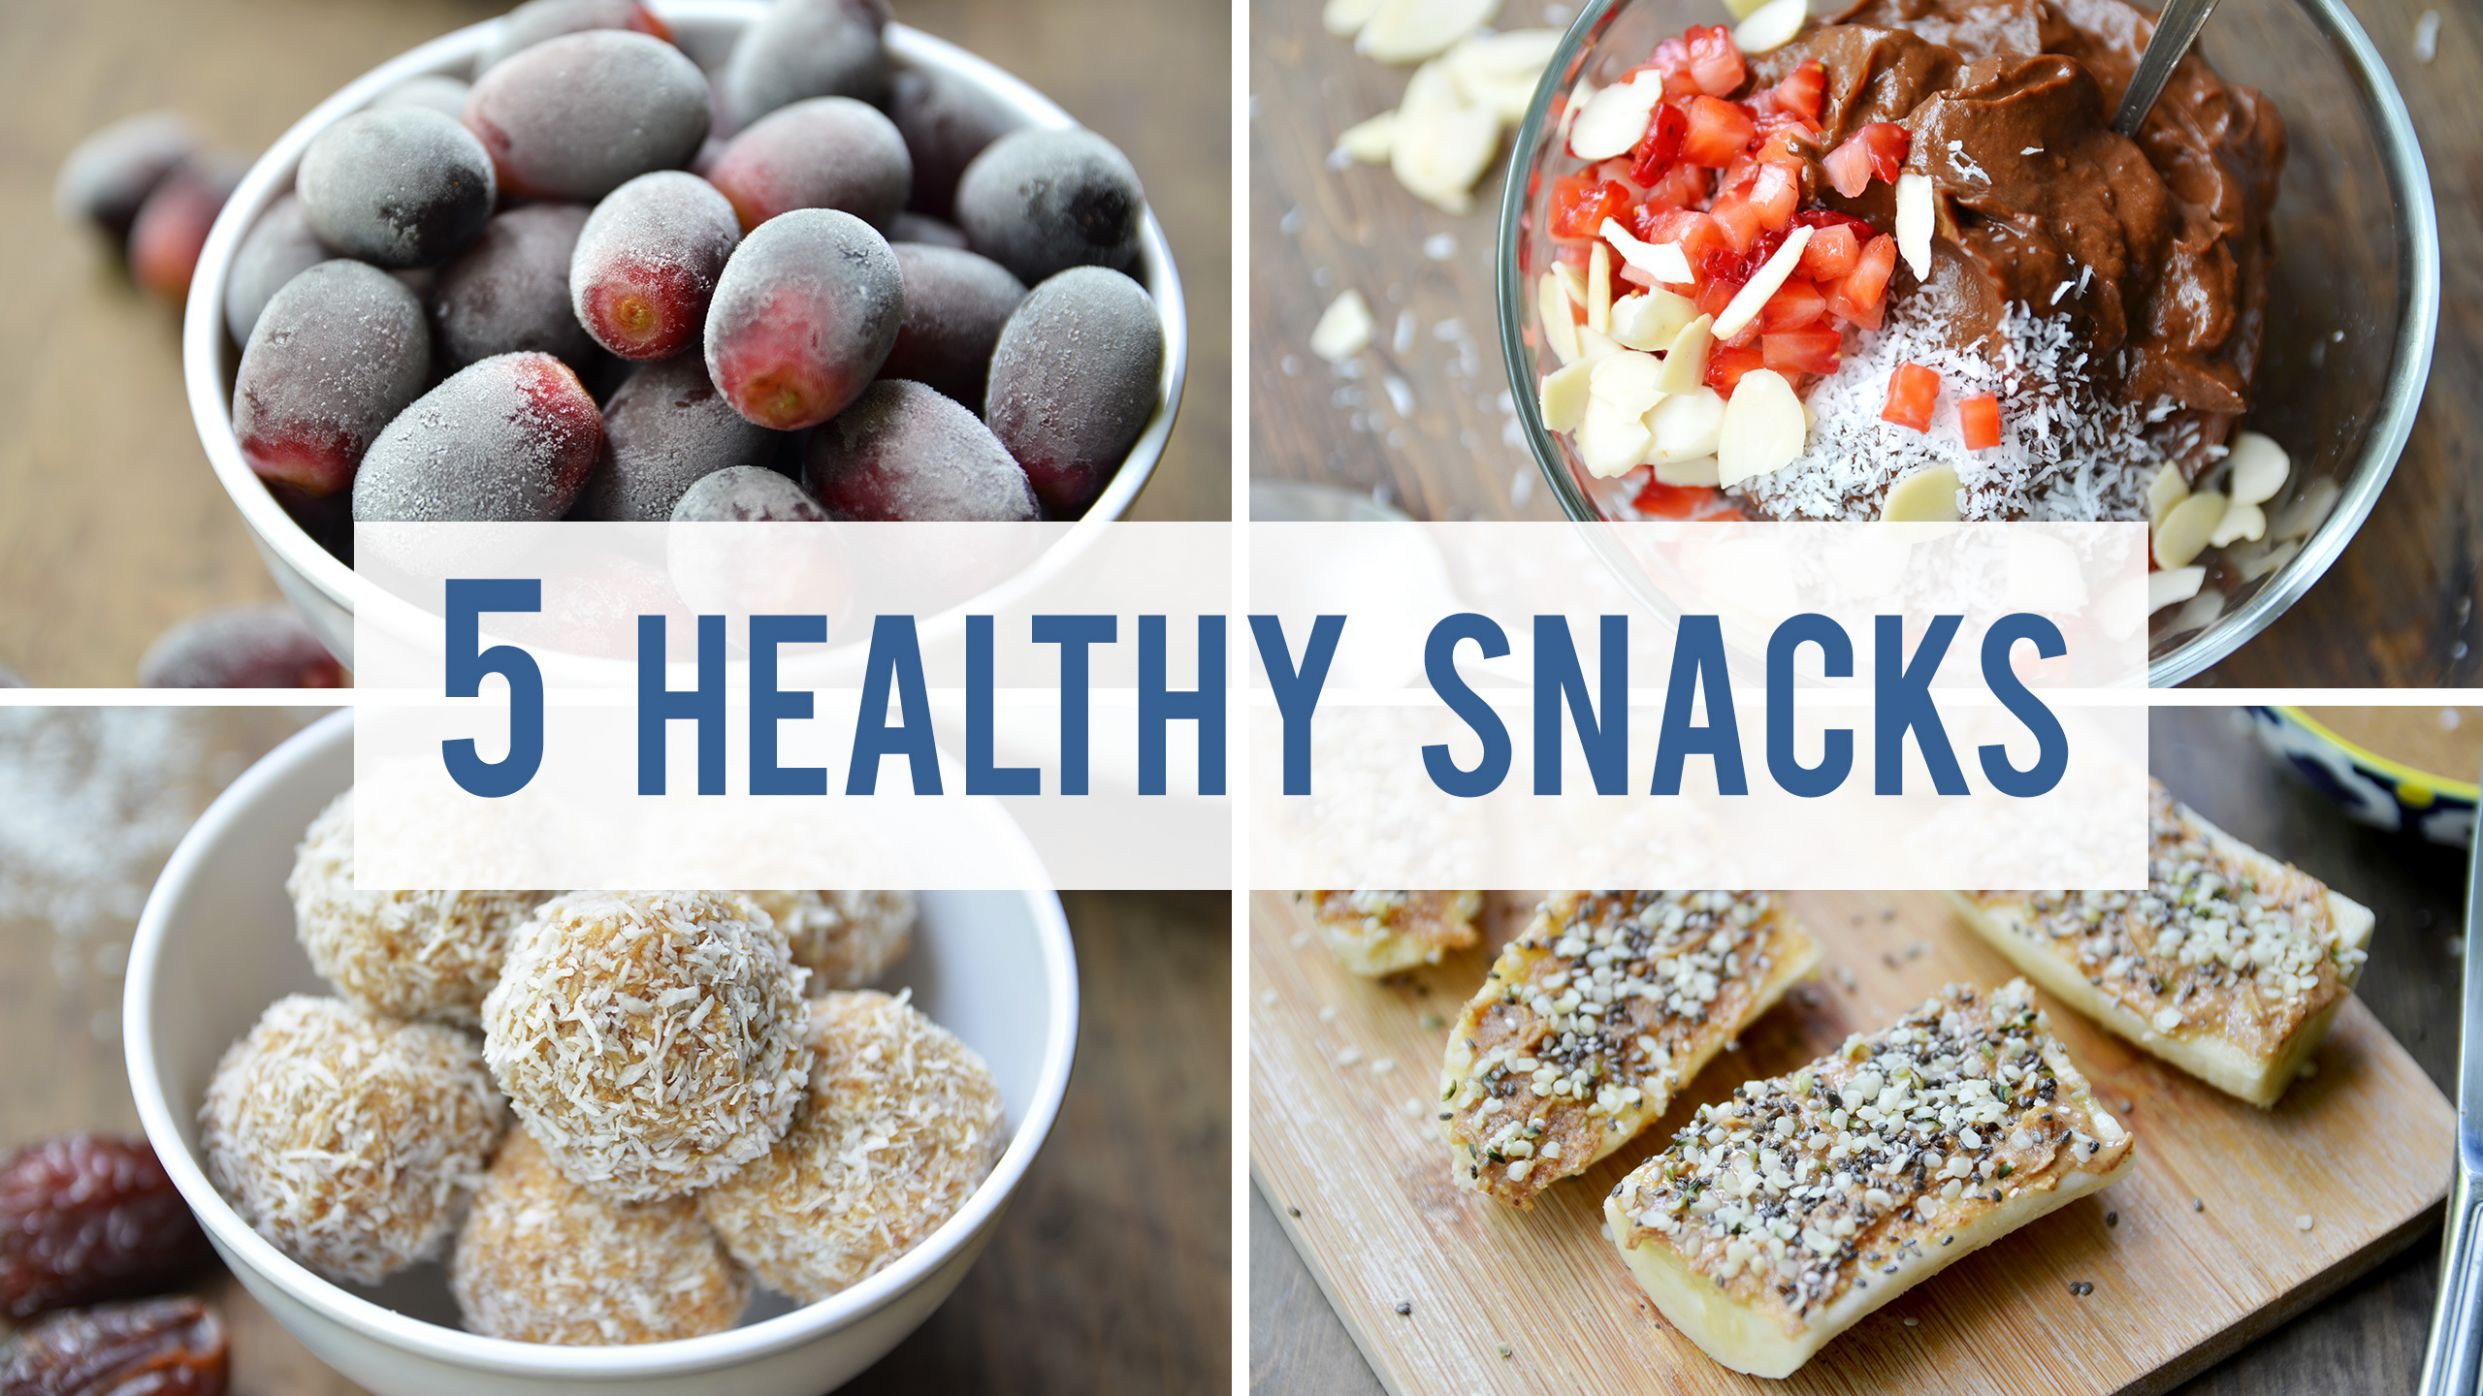 10 Healthy Snacks For Your Sweet Tooth - Healthy Recipes Snacks